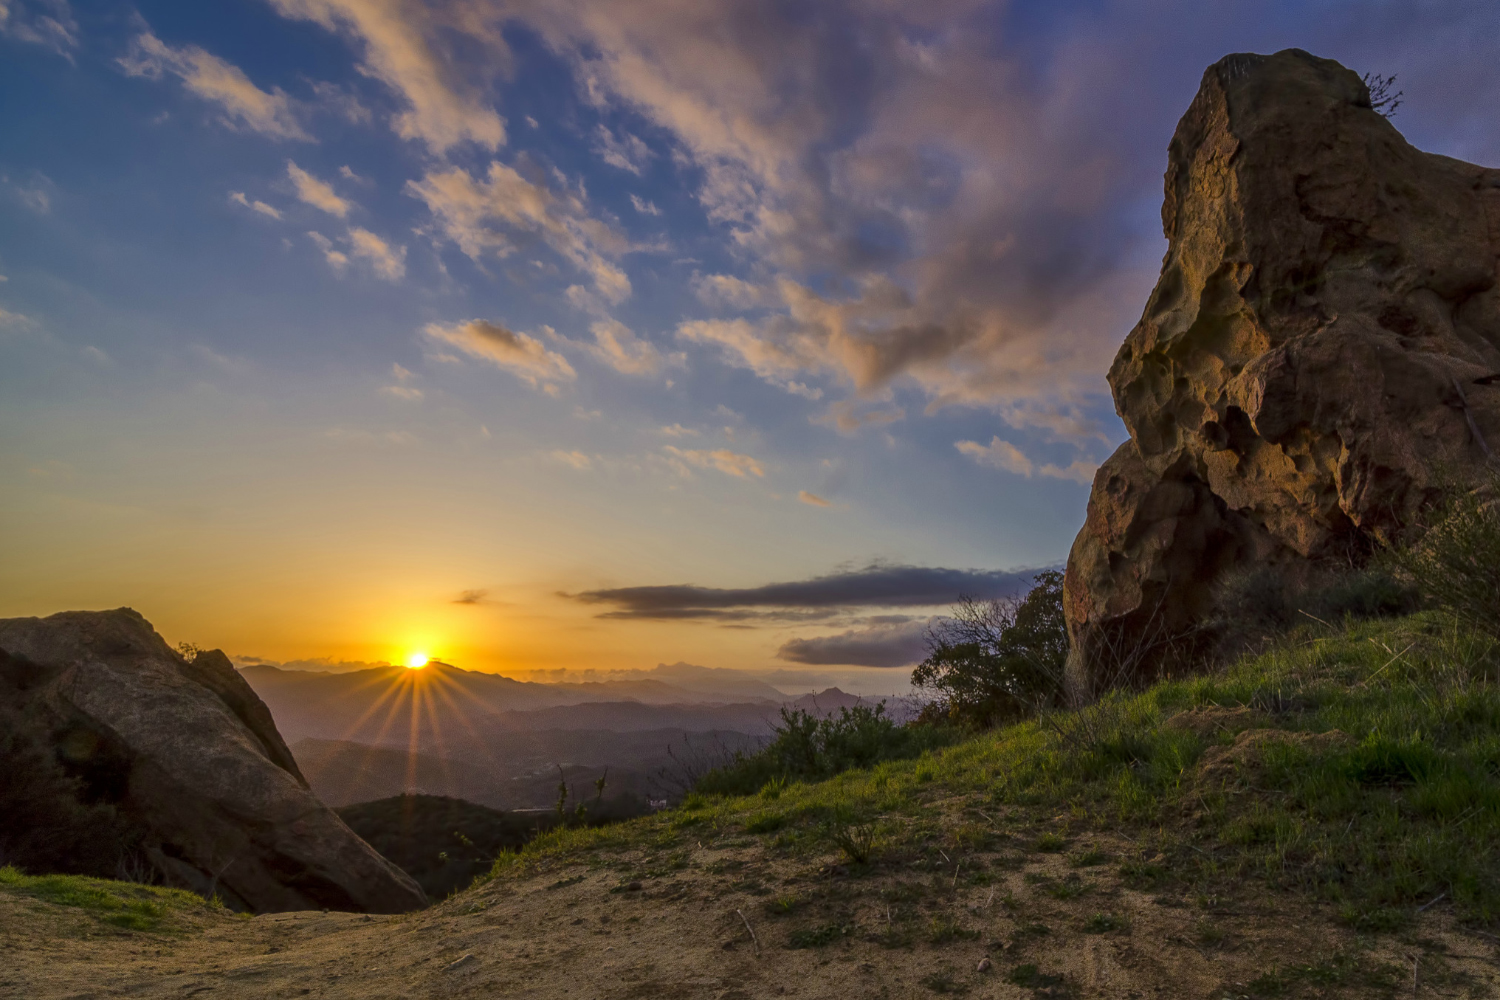 Topanga Canyon, California Sunset. Wasim Muklashy Photography.